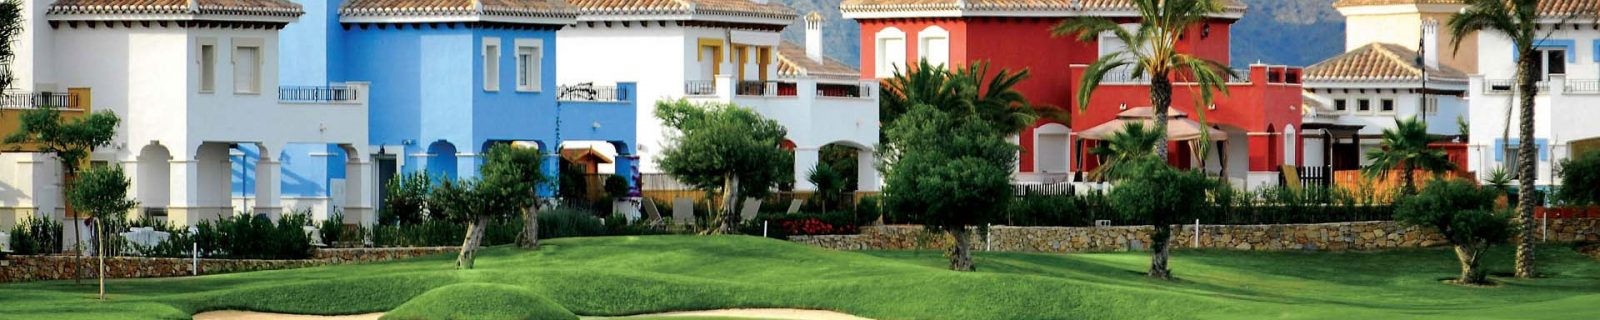 About Alhambra Villas - Estate Agents in Murcia, Spain - Alhambra Villas - Houses for Sale in Spain